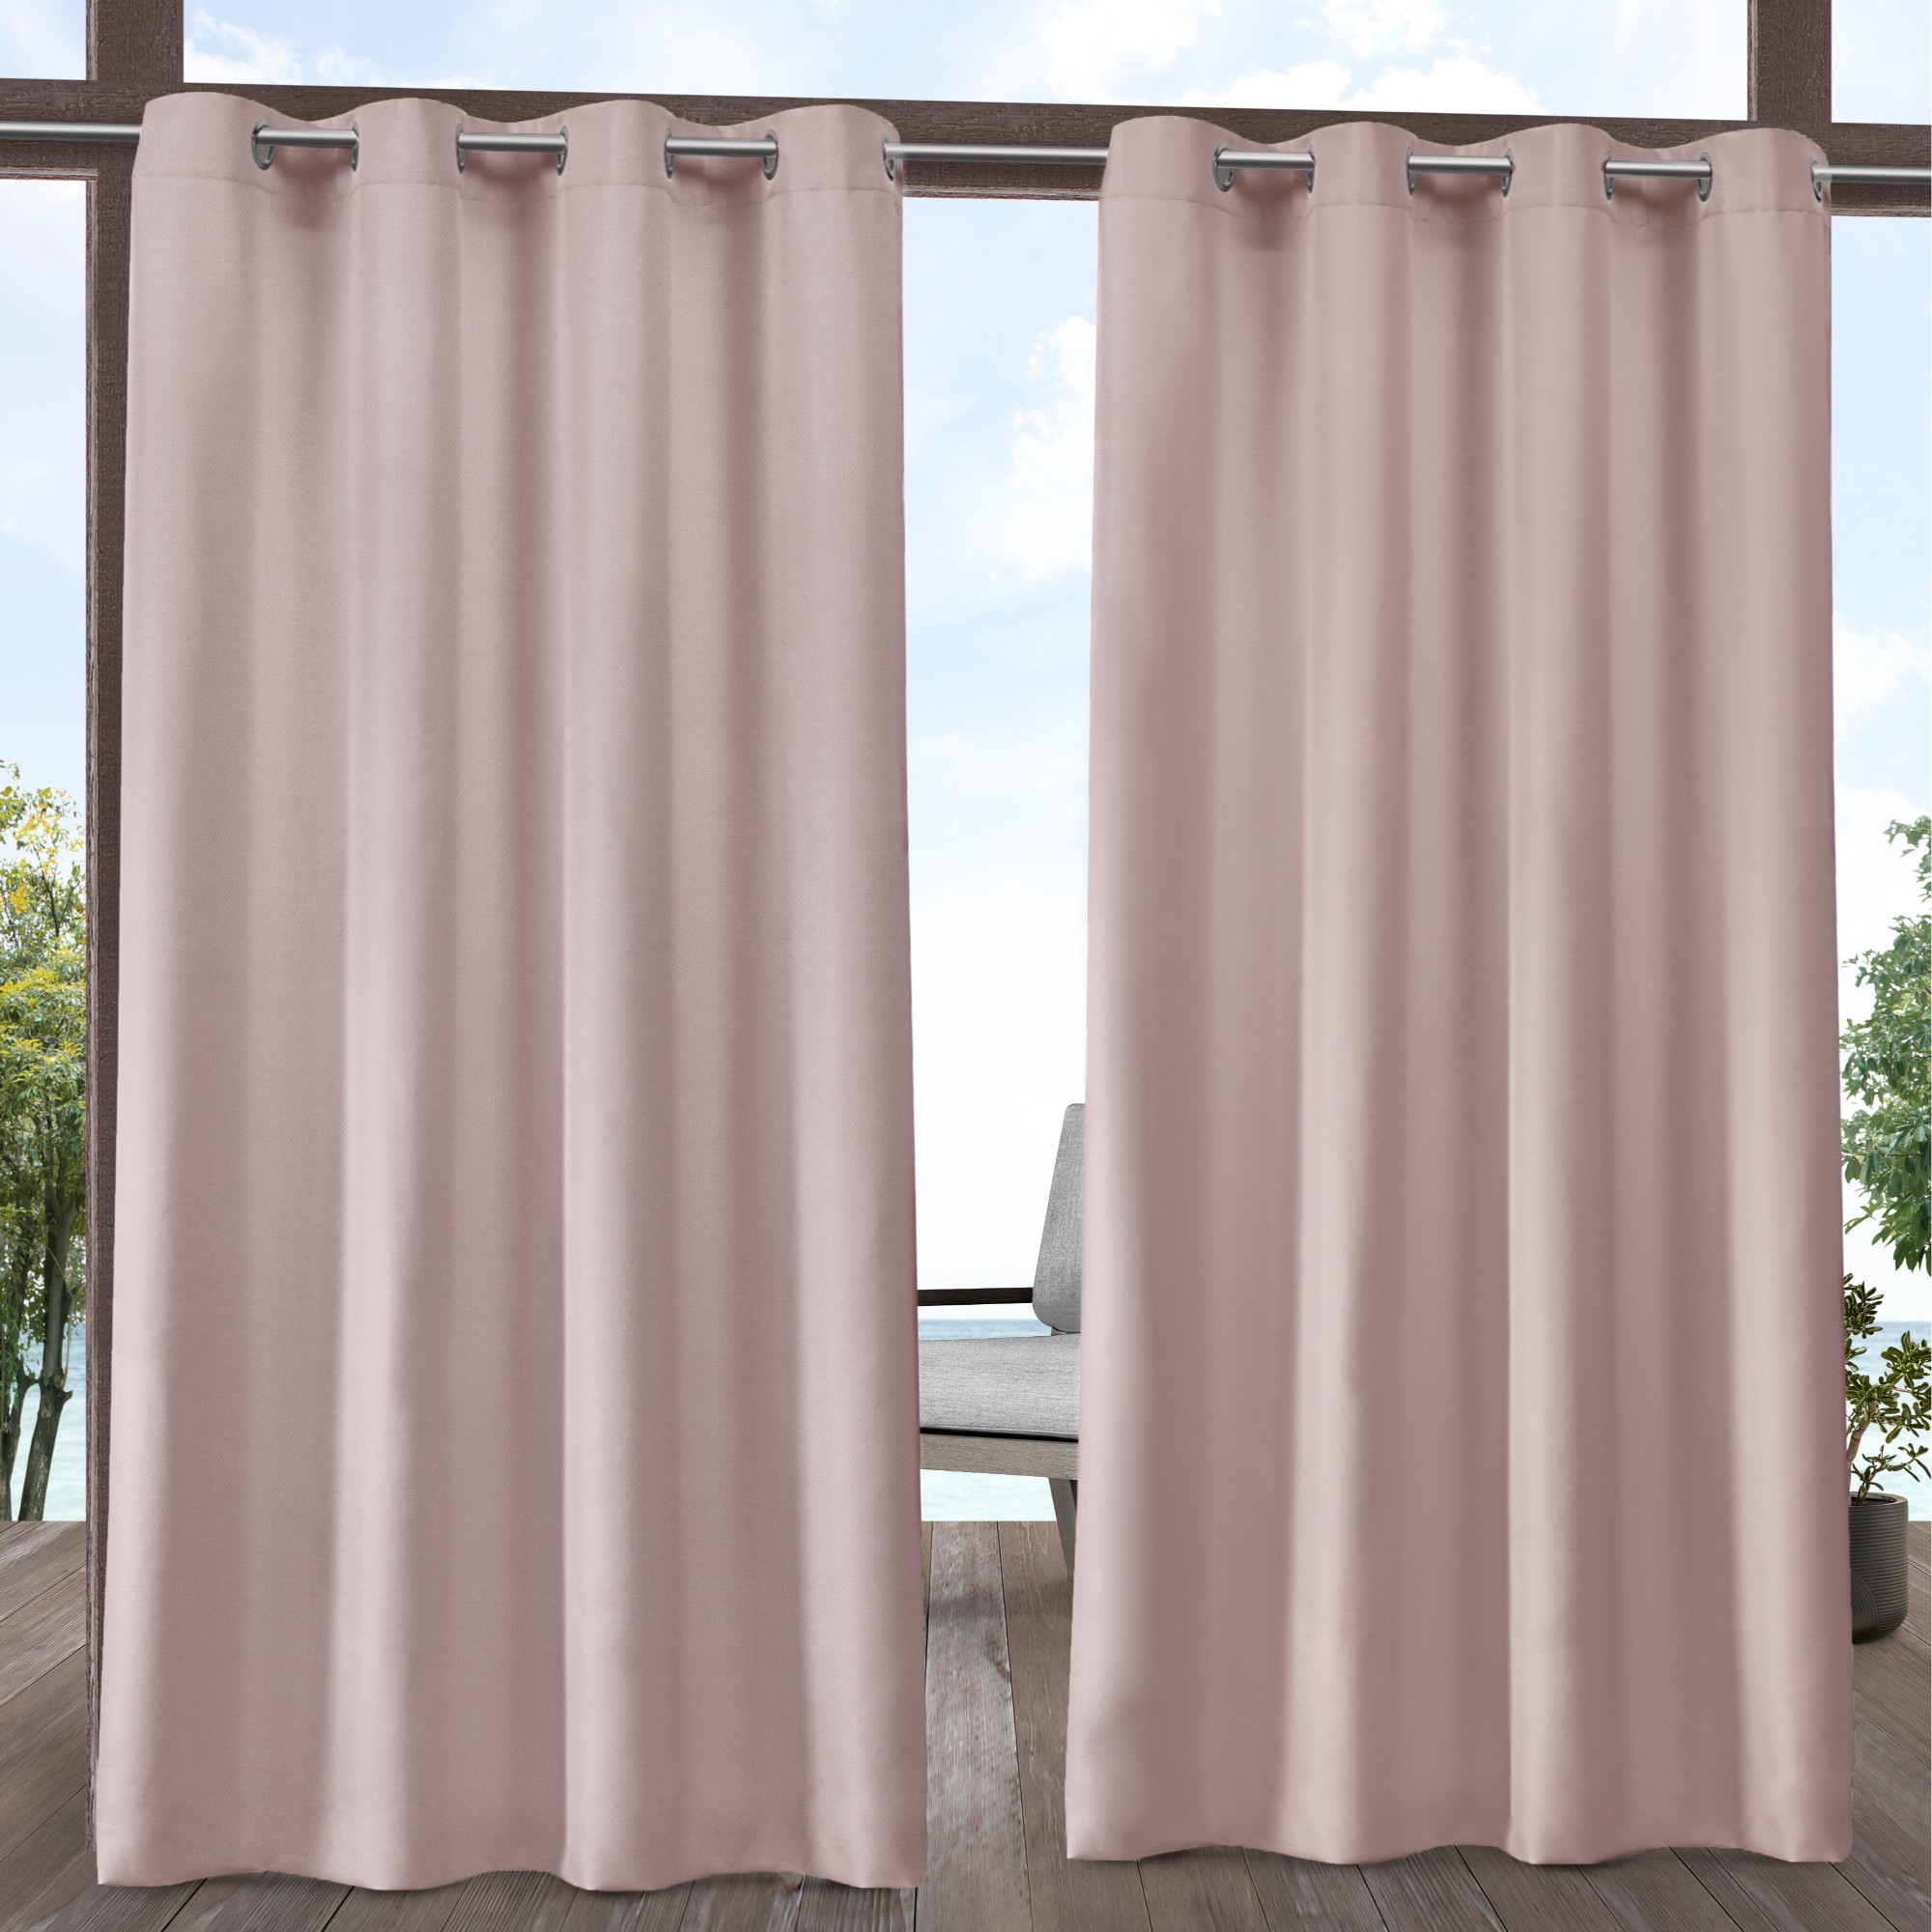 Exclusive Home Curtains 2 Pack Indoor/outdoor Solid Cabana Grommet Top Curtain Panels Regarding Indoor/outdoor Solid Cabana Grommet Top Curtain Panel Pairs (View 12 of 20)